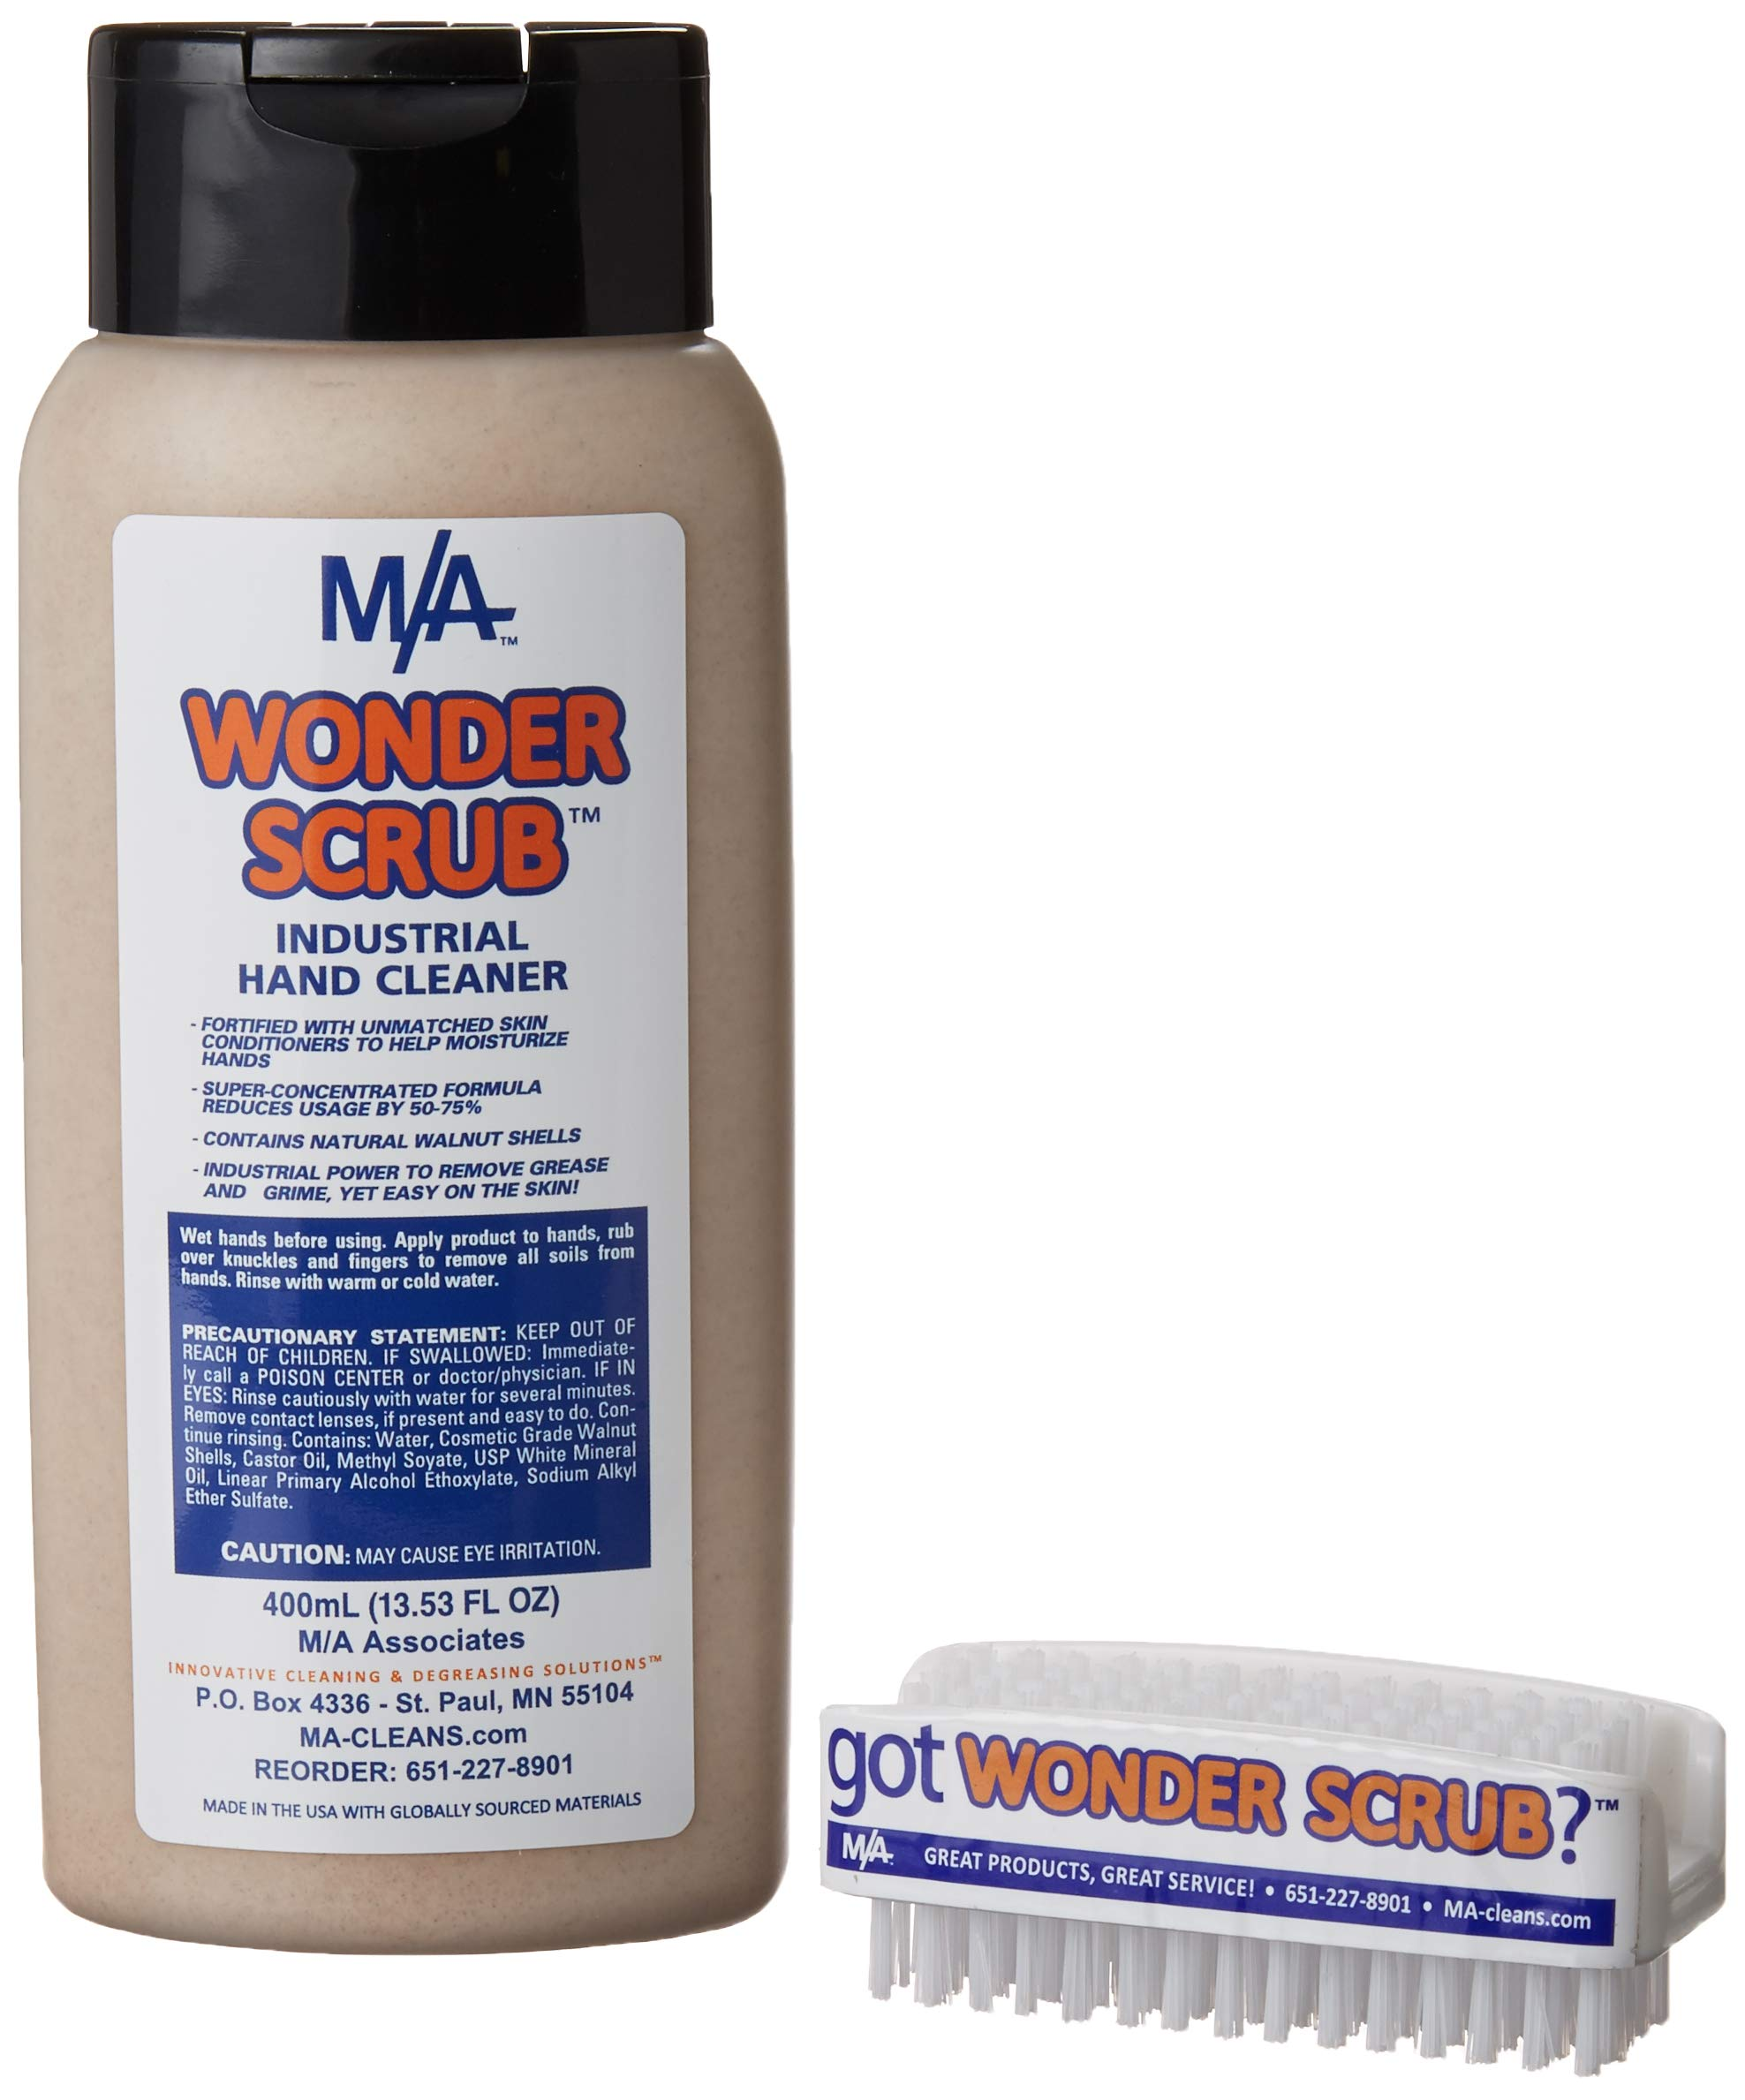 WONDER SCRUB Hand Cleaner Industrial Strength, Heavy duty for grease, grime, oil, paint. (400ml & Brush)''The BEST hand cleaner on the market!'' Patented Formula. Accept NO Substitutes! by M/A